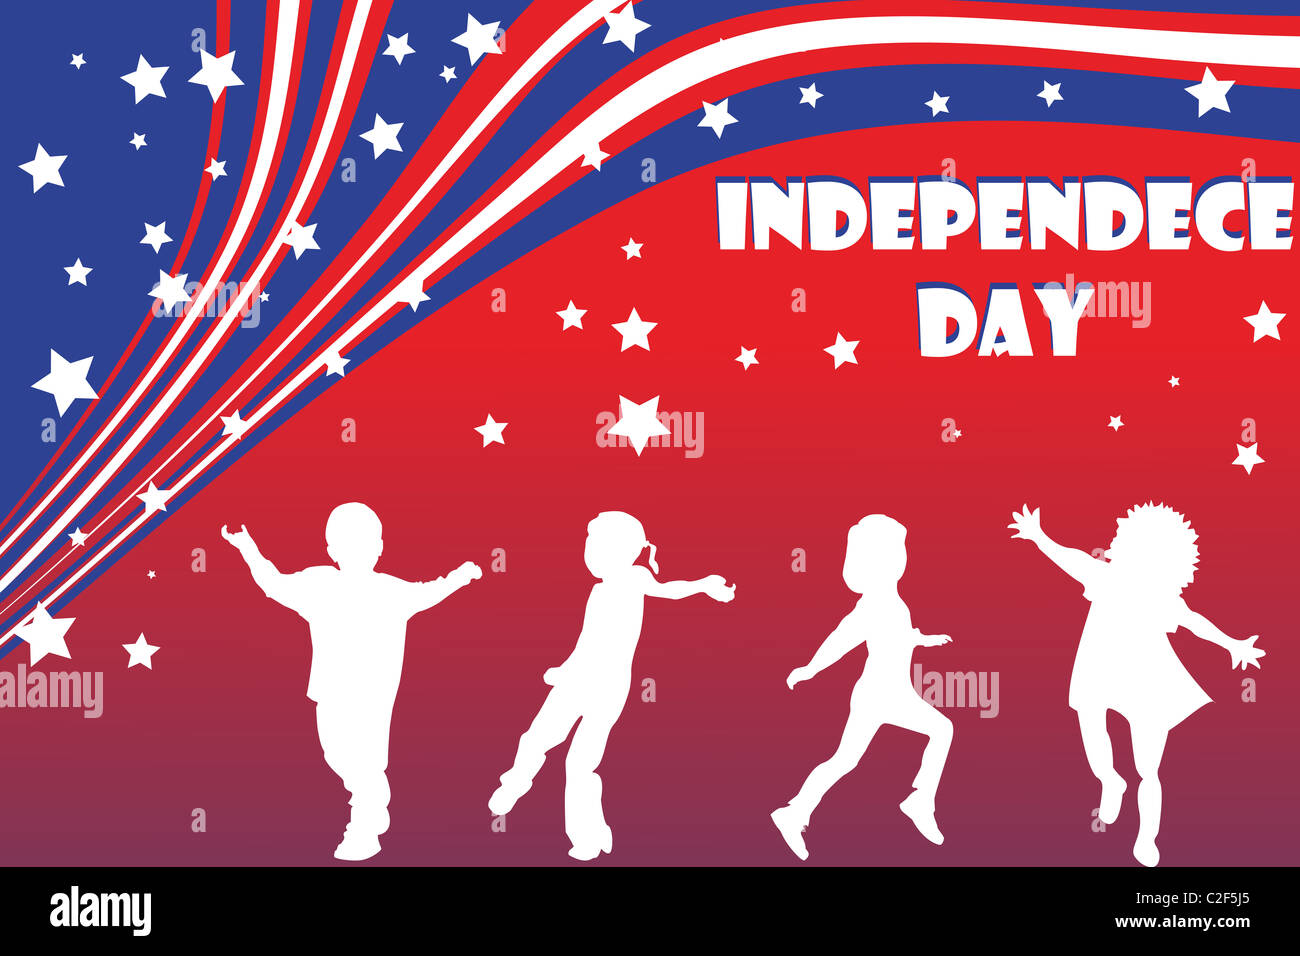 background illustration for Independence day - Stock Image